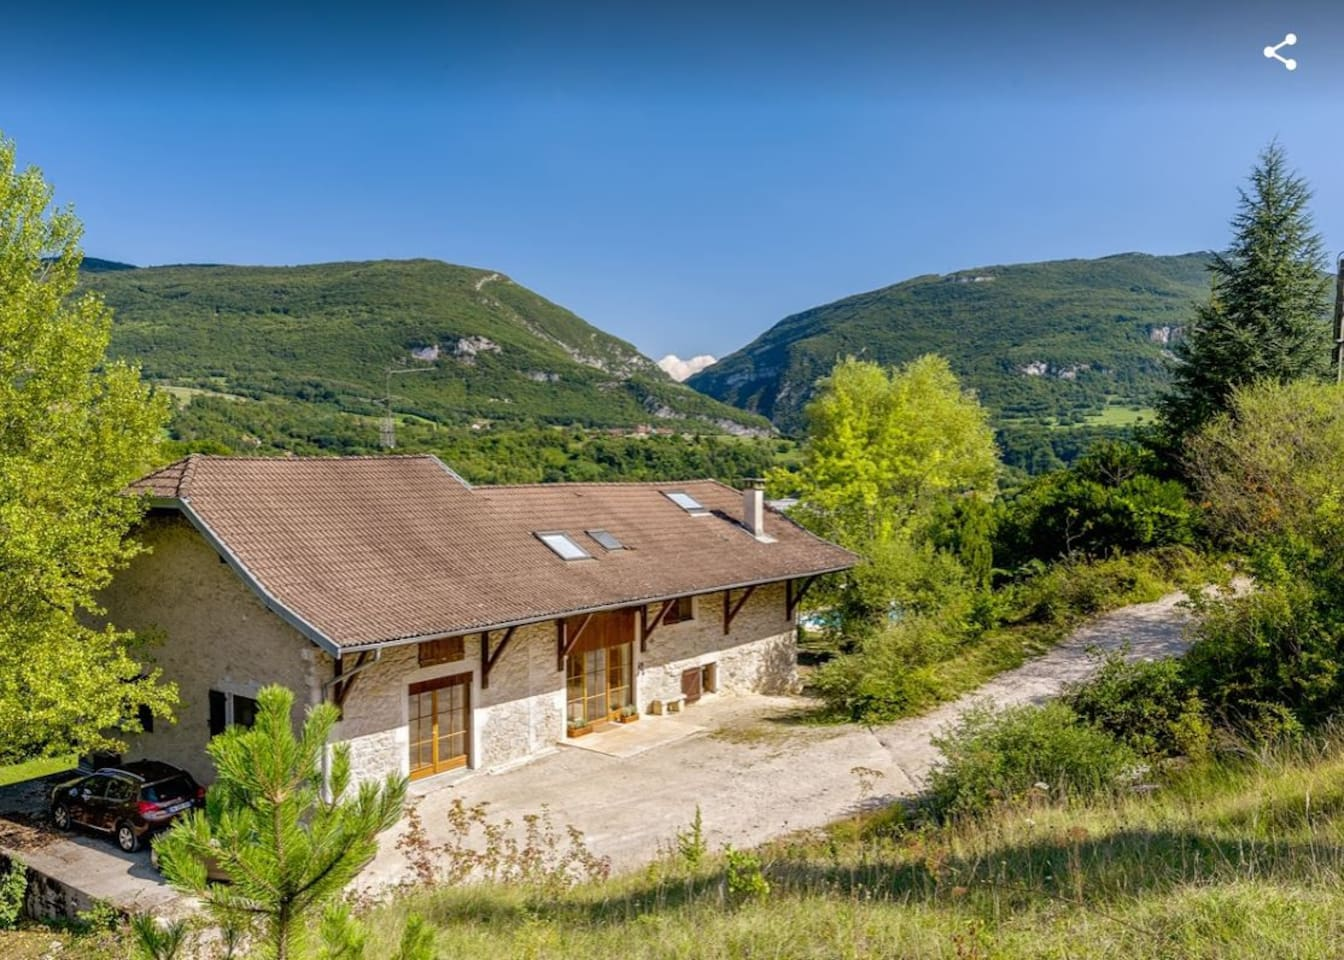 Renovated country home in a private setting between Rhone and Juras